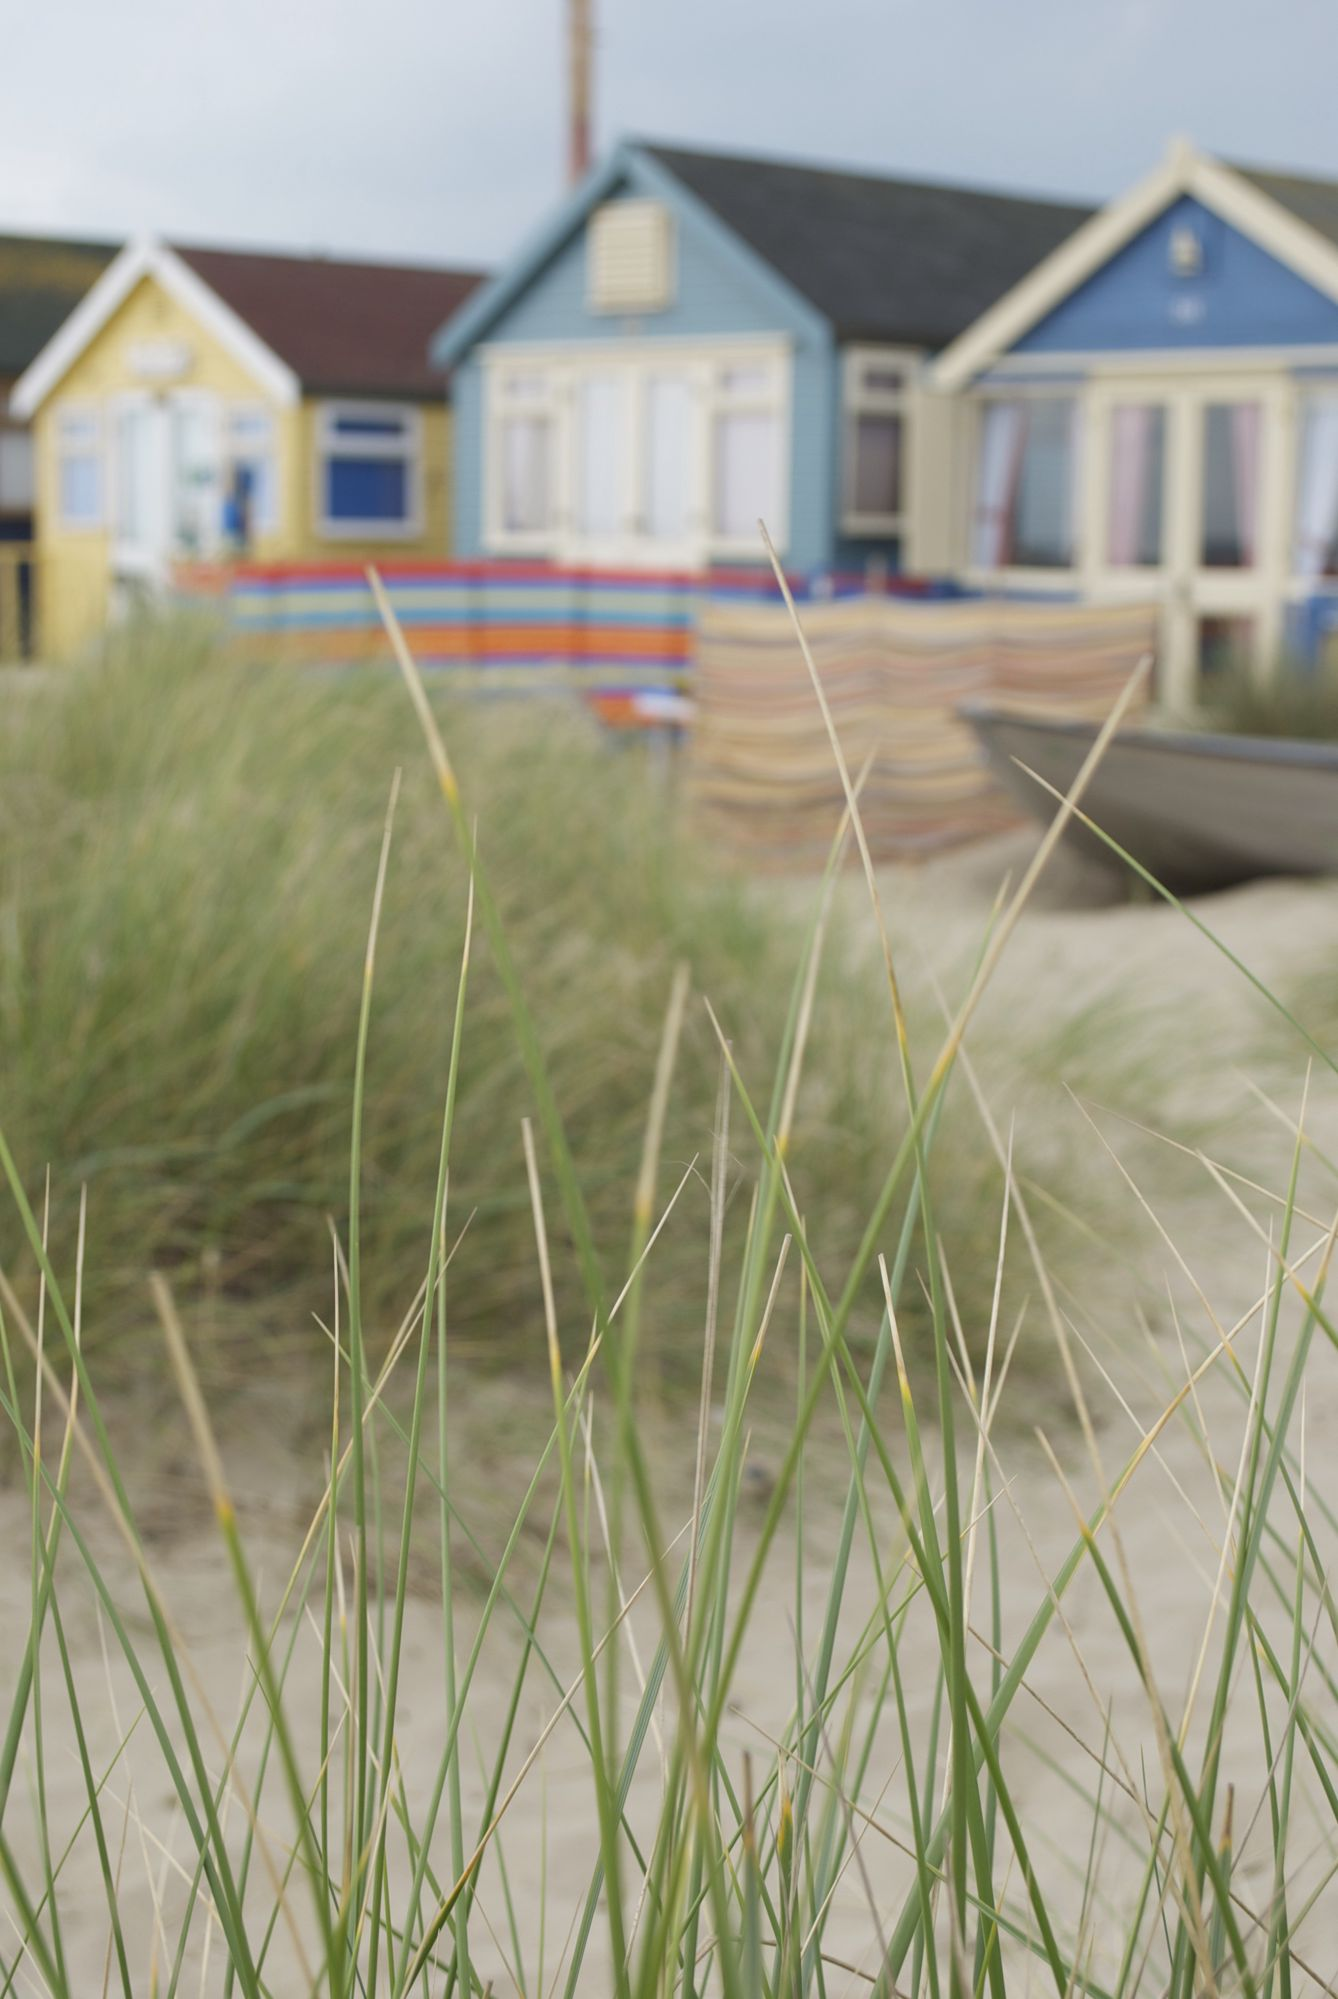 Mudeford sand spit is, in fact, a sort of shed shanty town: 365 beach huts (one for every day of the year, maybe?